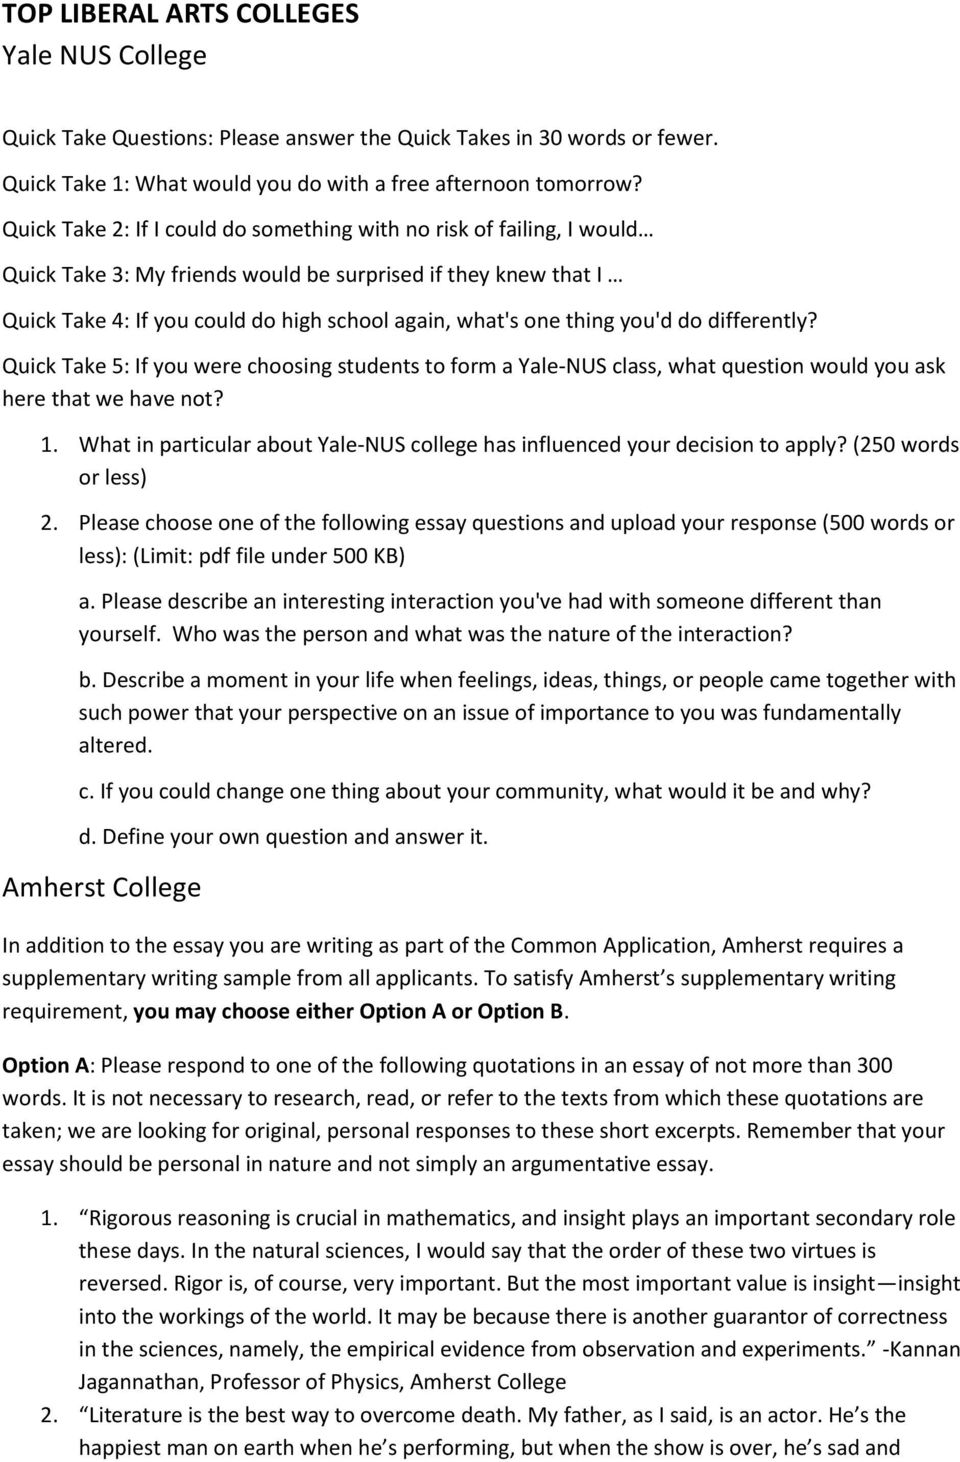 Persuasive Essays Examples For High School High School Entrance Essays High School Scholarship Essay Examples Diamond  Geo Engineering Services How To Write What Is The Thesis Statement In The Essay also Argument Essay Sample Papers My Daily School Activities Essay Example College Application  What Is Thesis In An Essay